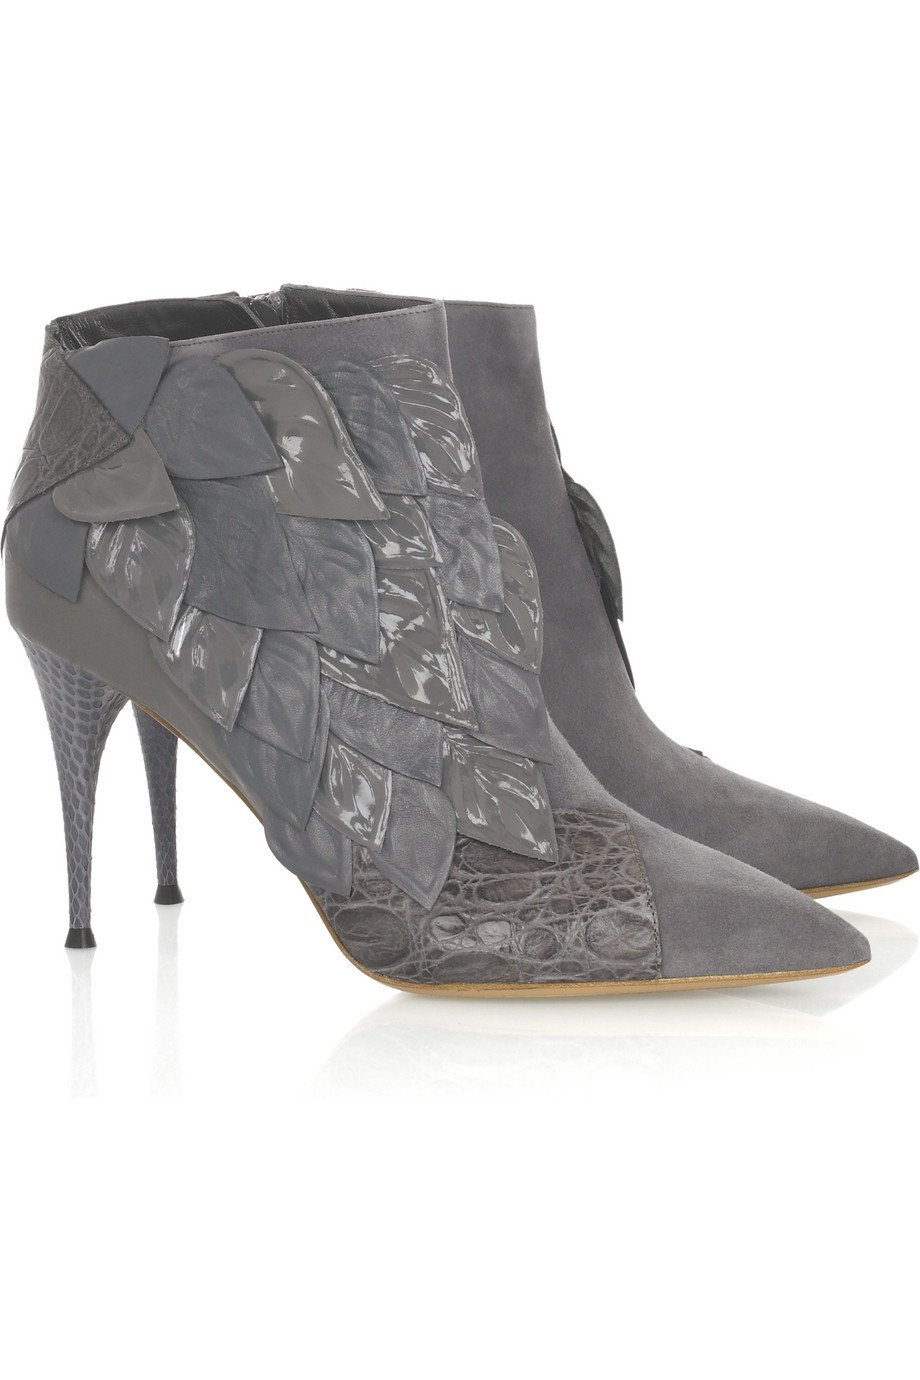 Chloé Raised leaf boots | NET-A-PORTER.COM from net-a-porter.com